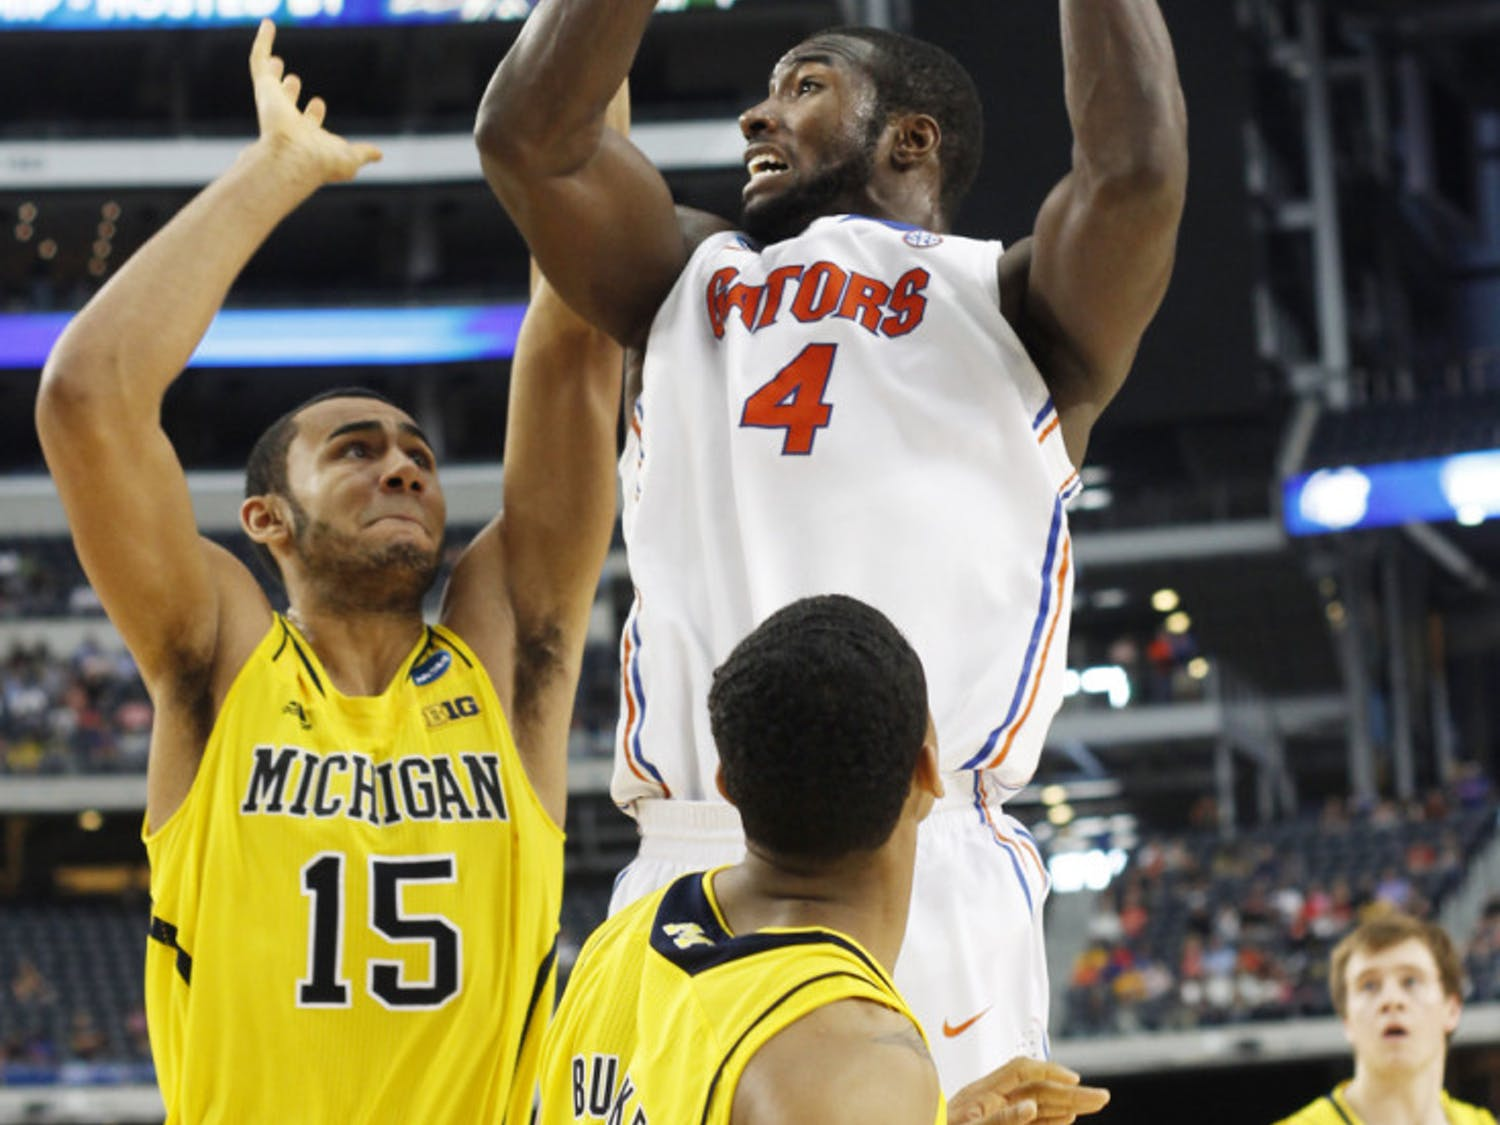 Junior center Patric Young (4) attempts a shot during Florida's 79-59 loss to Michigan in the Elite Eight on Sunday at Cowboys Stadium in Arlington, Texas.